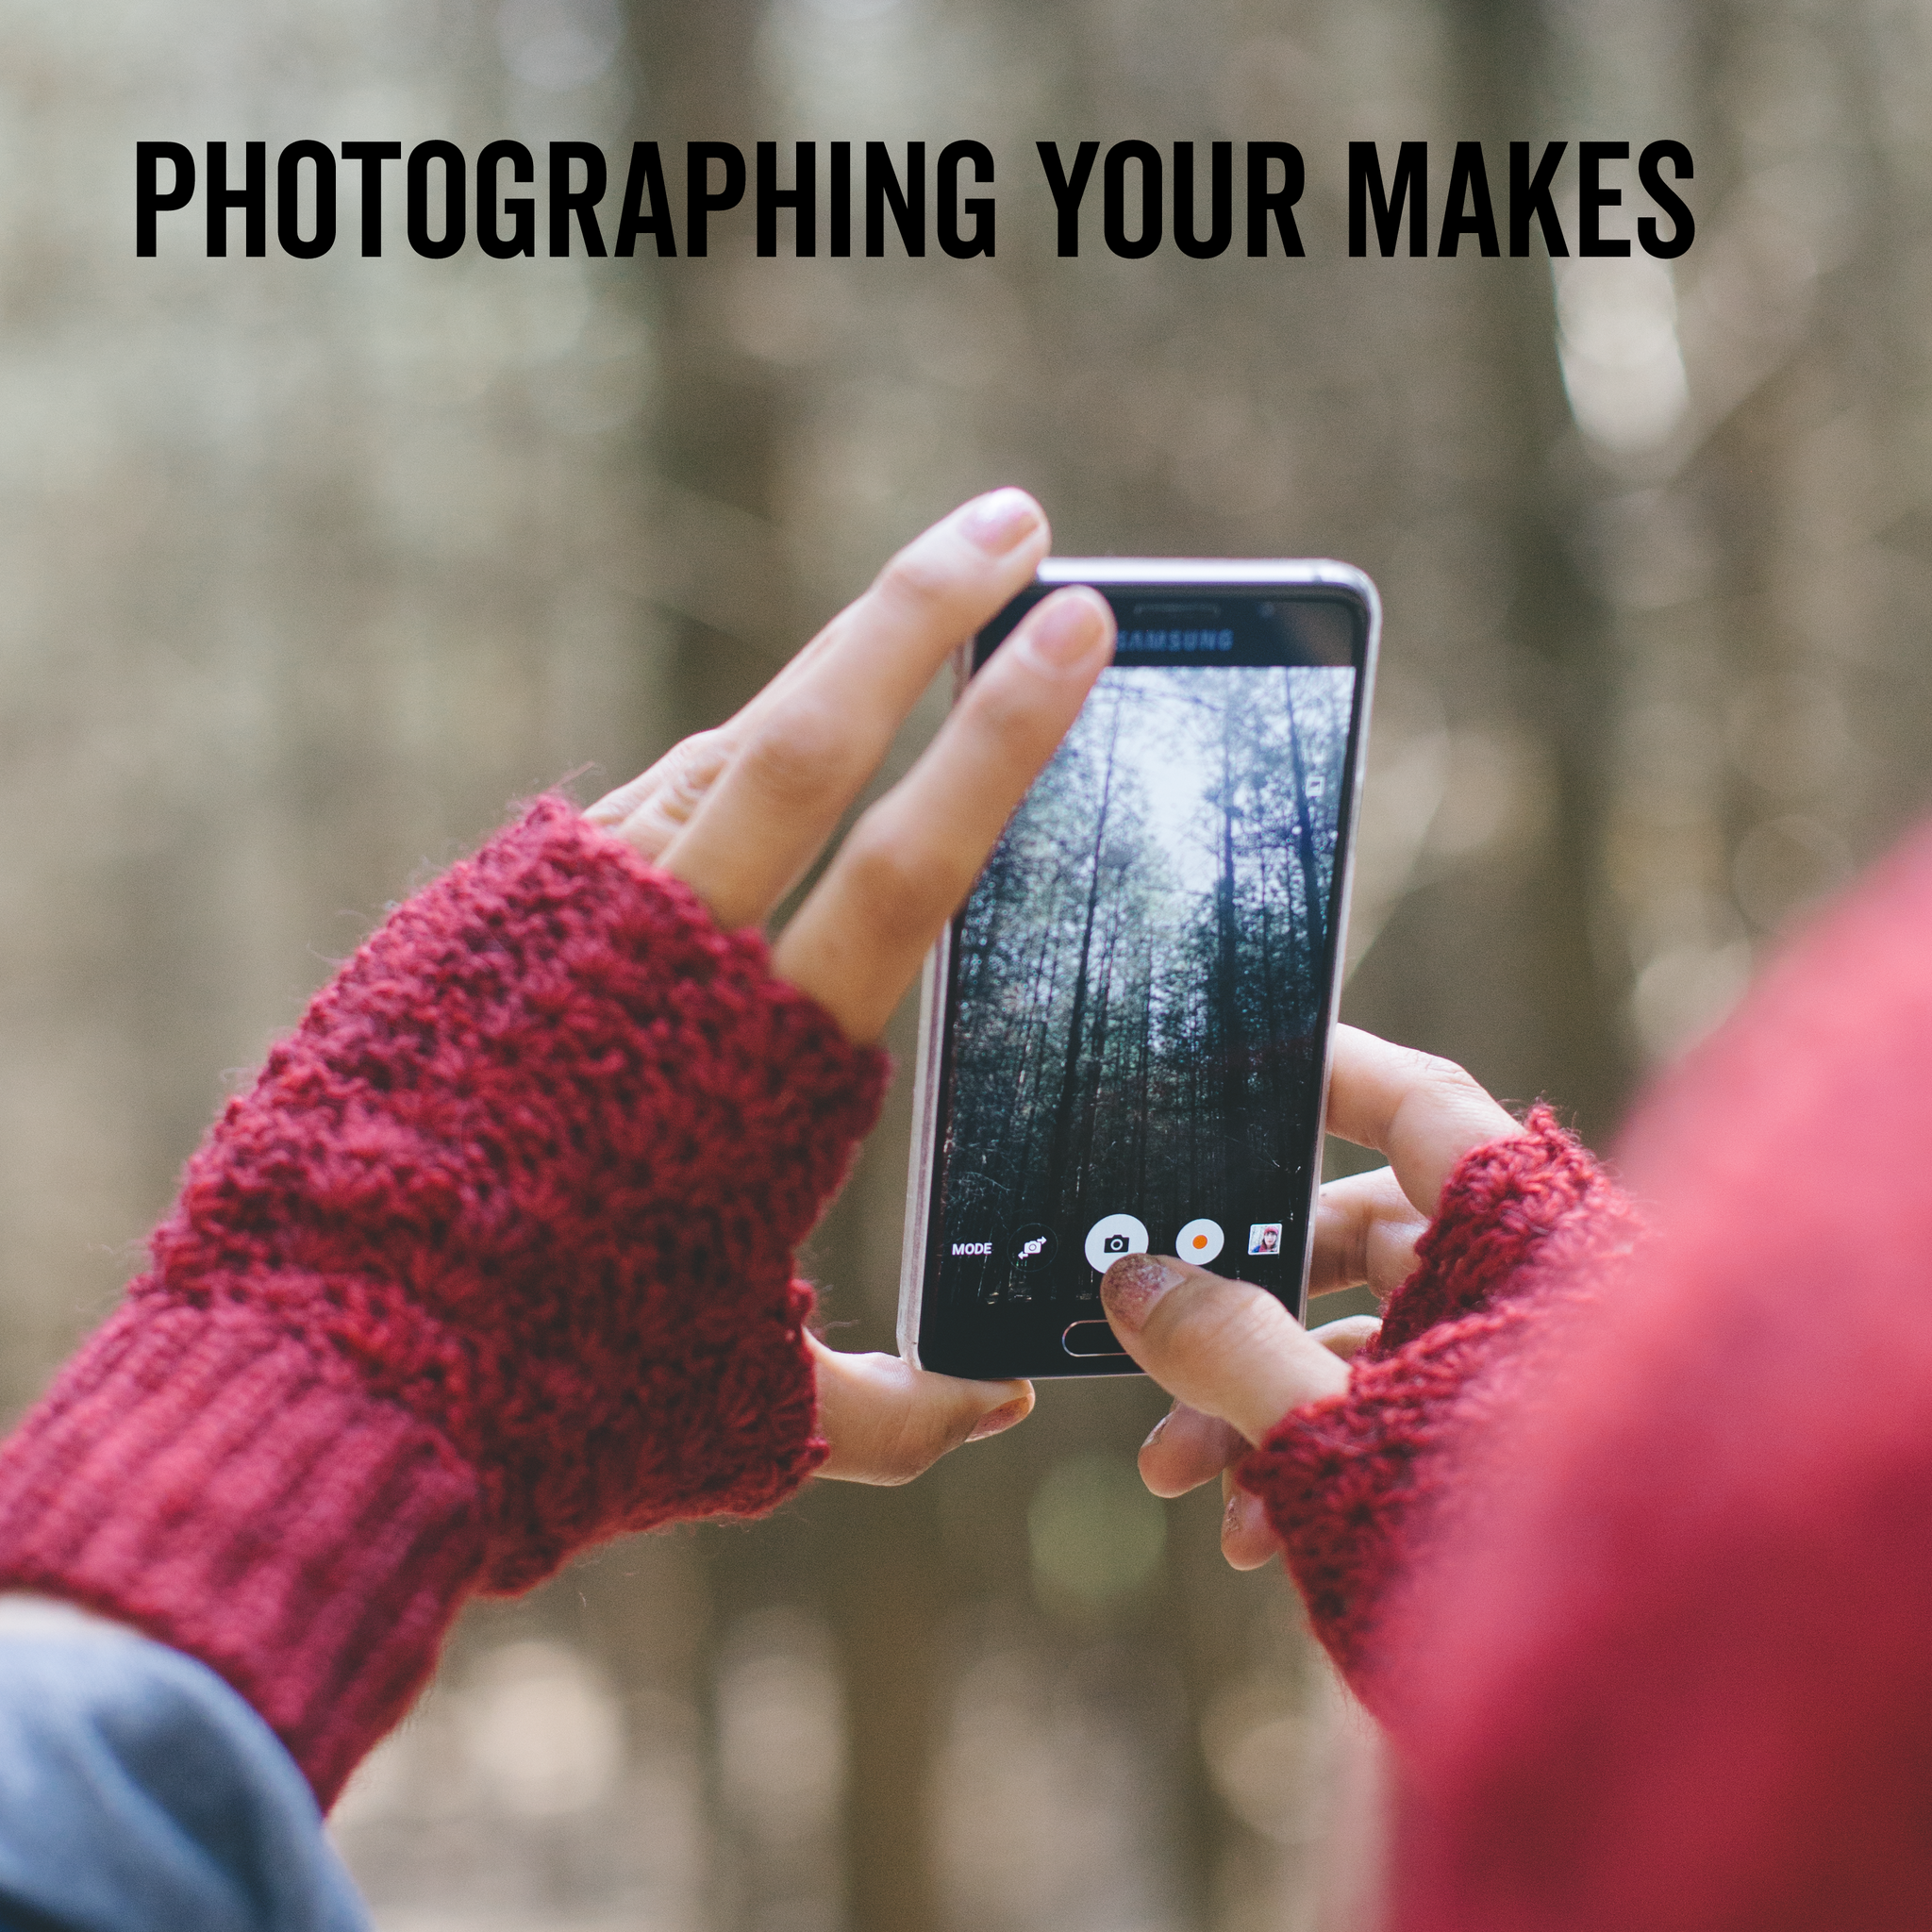 Photographing Your Makes